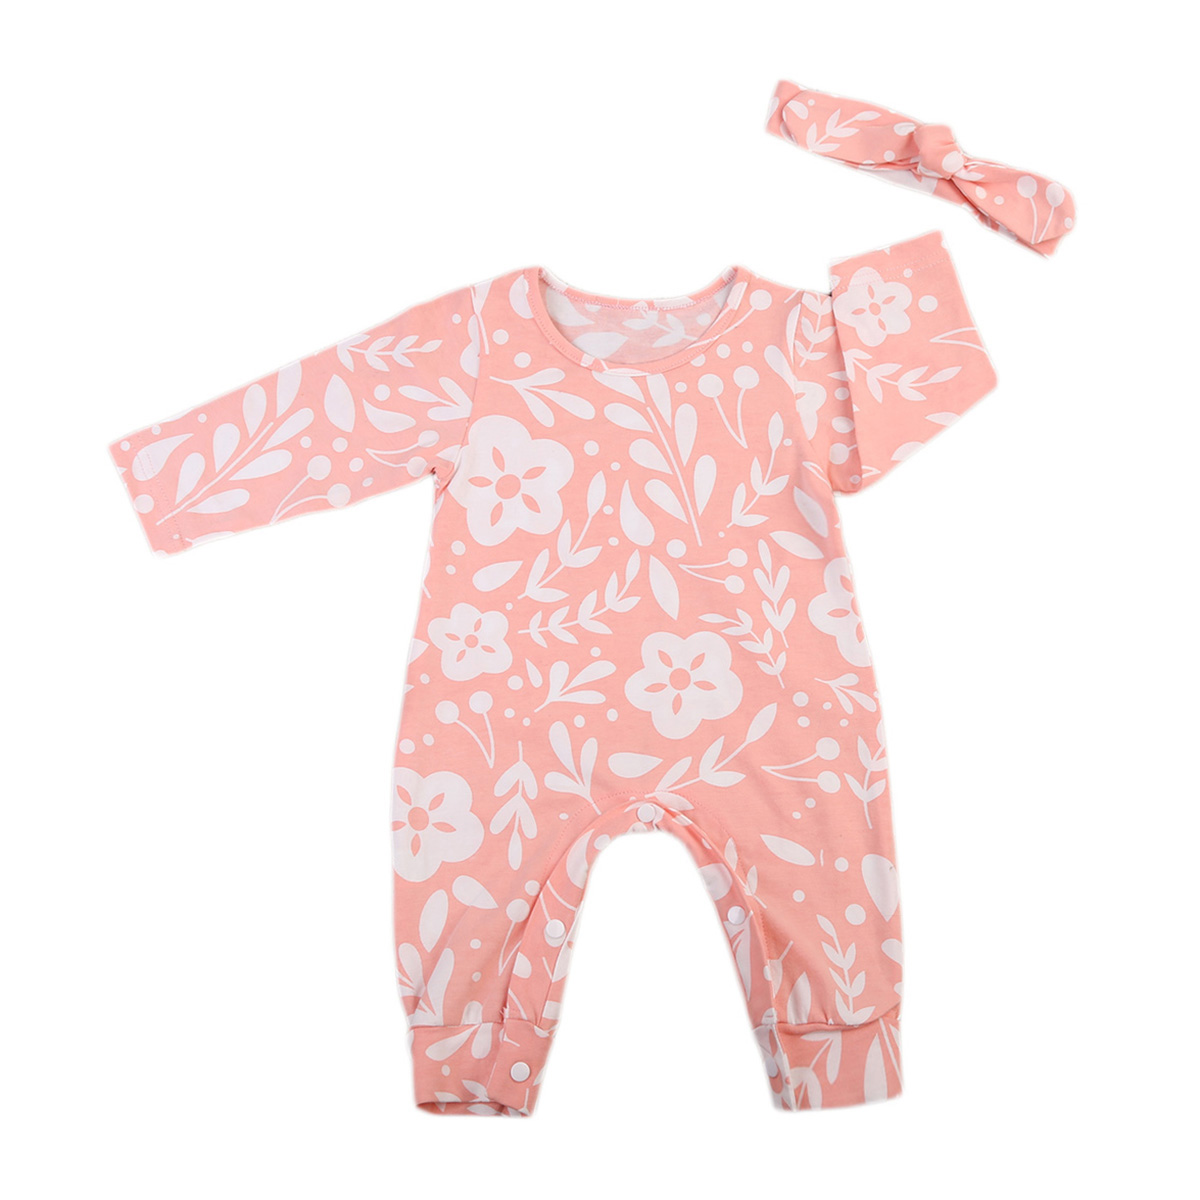 2017 Autumn Babies Whilte Flower Clothing Toddler Kids Baby Girls Floral Romper Jumpsuit Headband Outfits Clothes